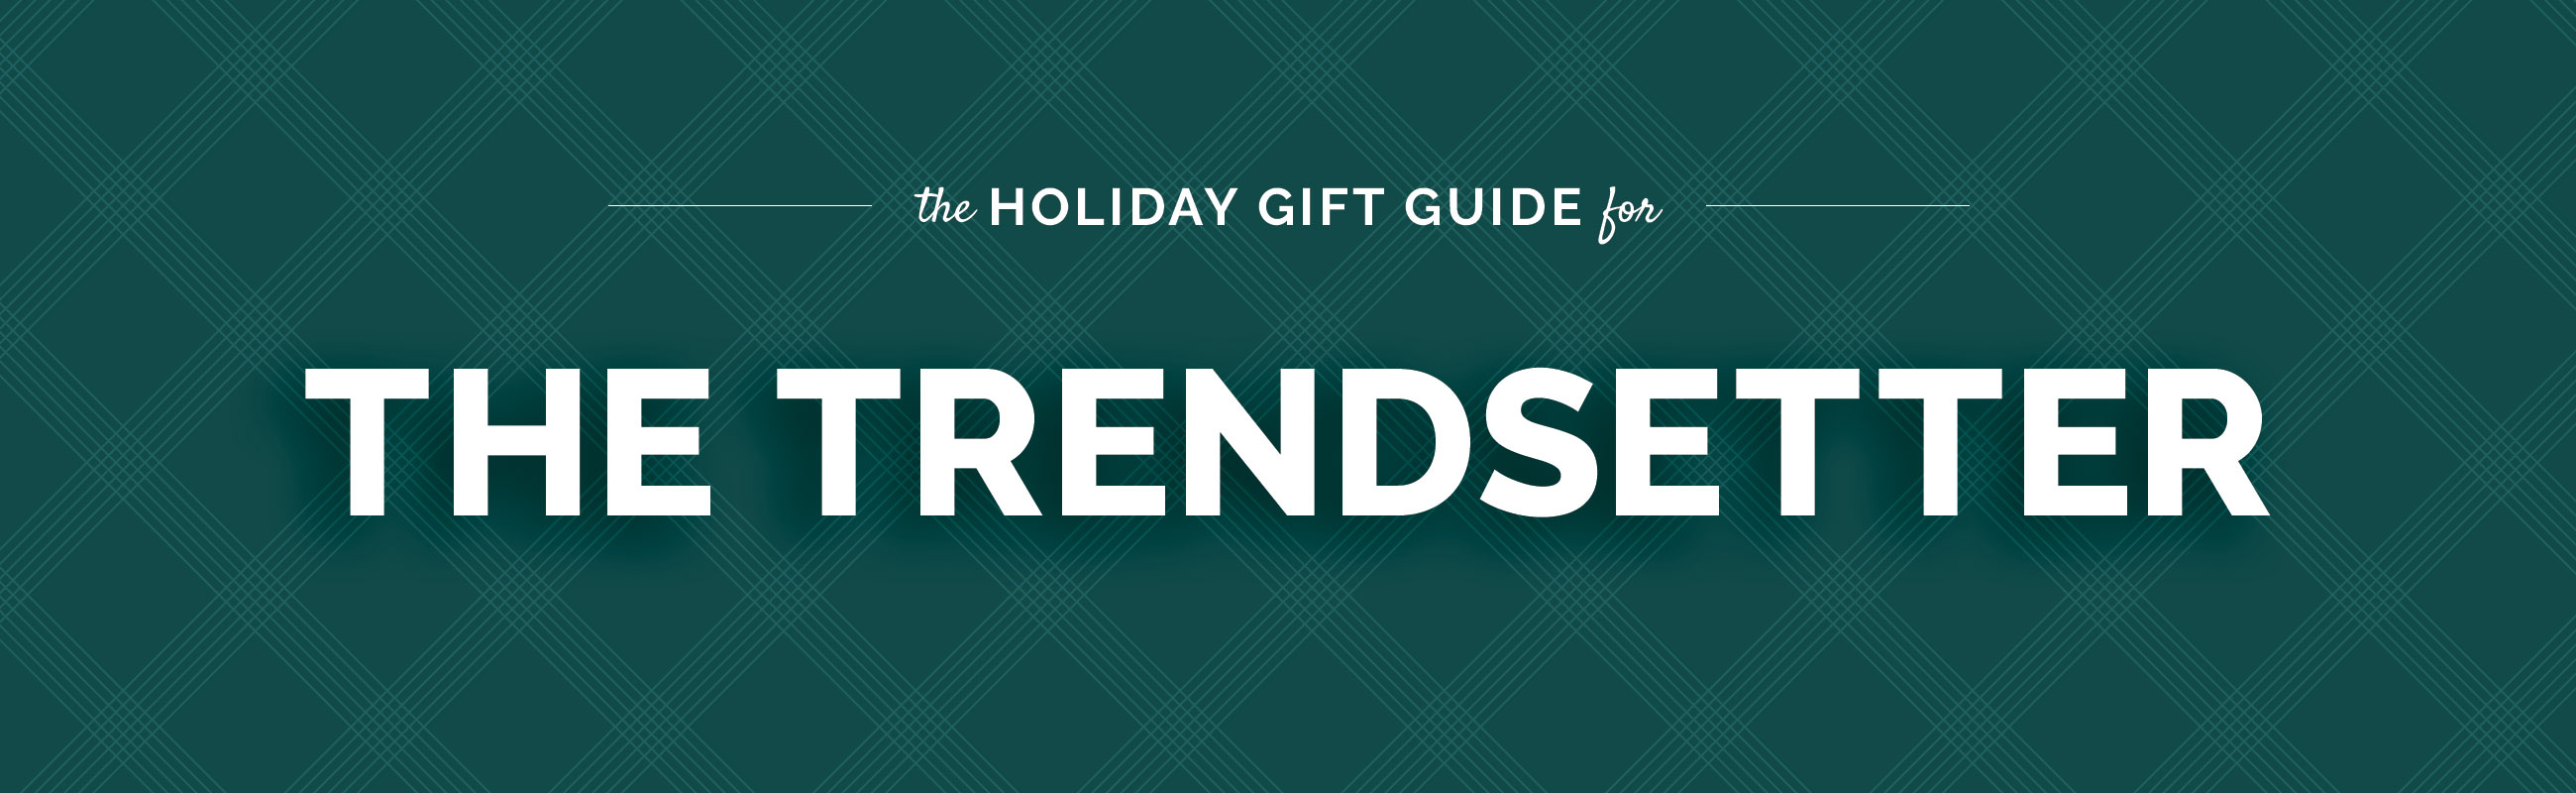 The Trend Setter Gift Guide